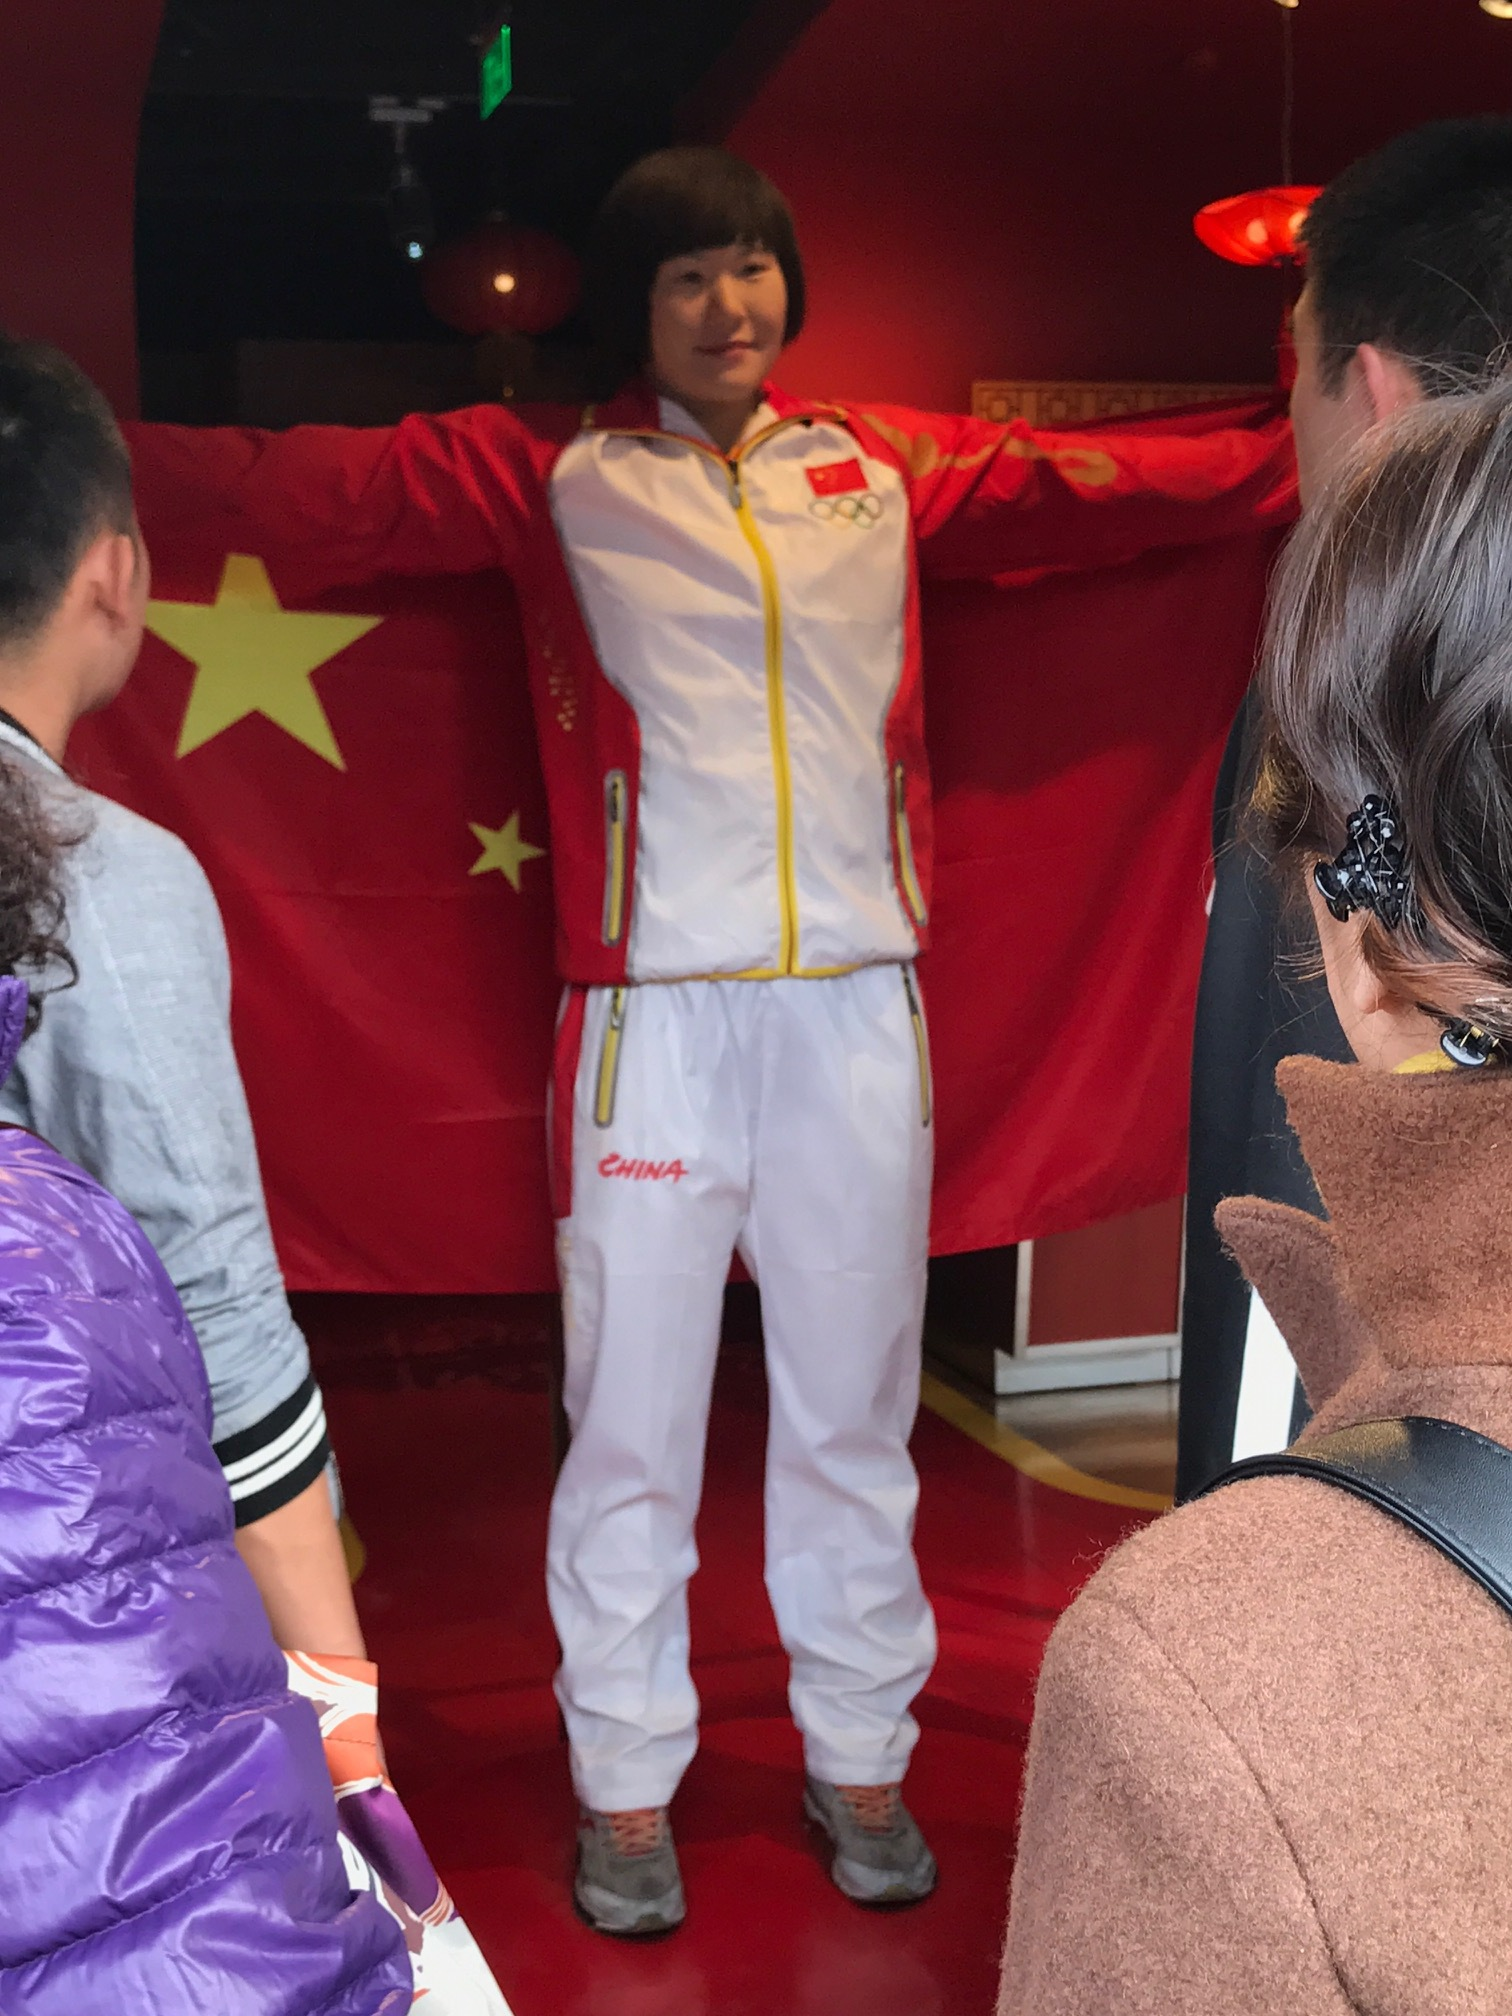 A real wax statue at Bejiing's Madam Toussaud